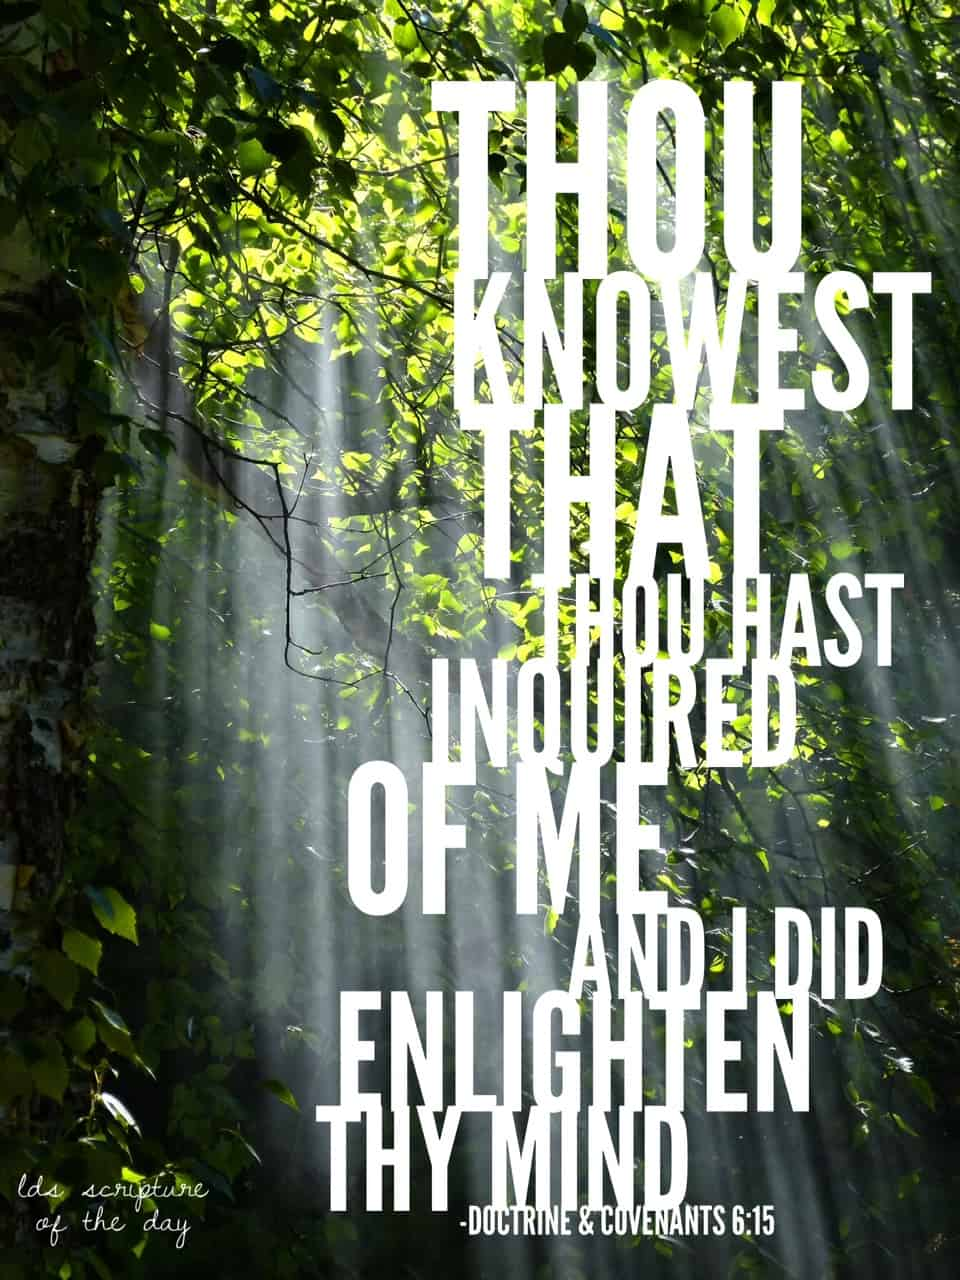 Behold, thou knowest that thou hast inquired of me and I did enlighten thy mind; and now I tell thee these things that thou mayest know that thou hast been enlightened by the Spirit of truth; Doctrine & Covenants 6:15